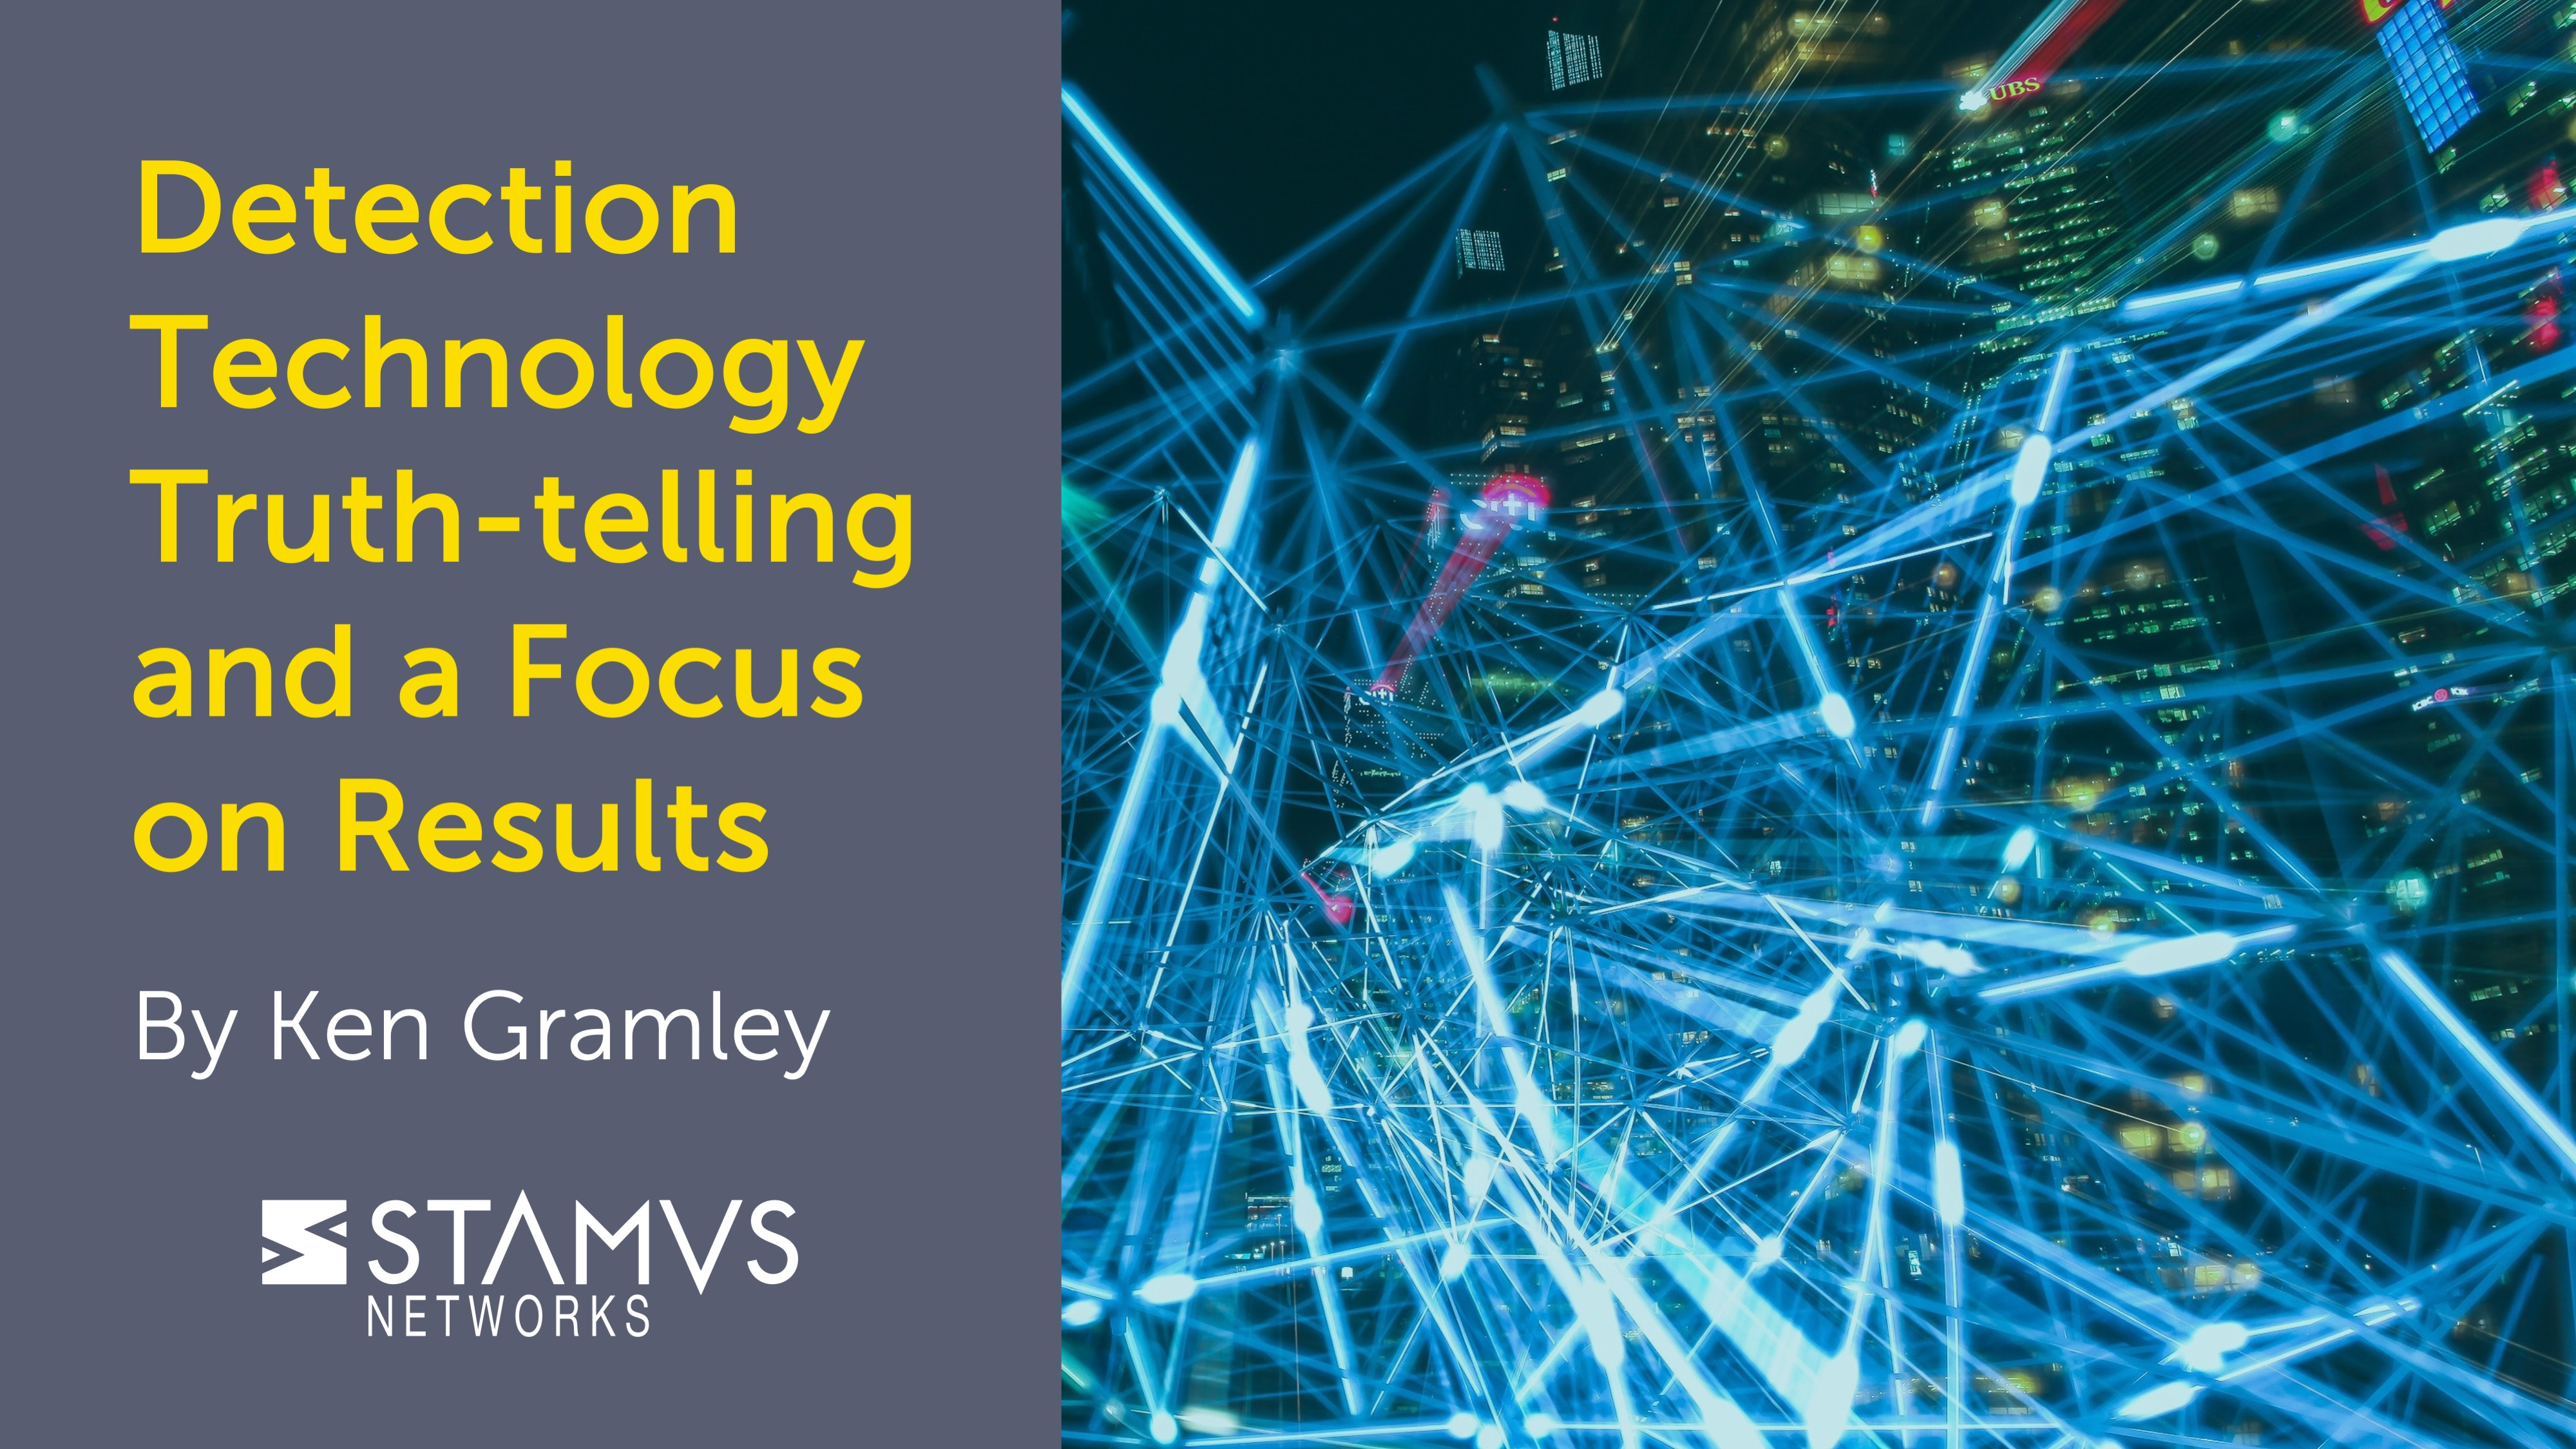 Stamus Networks | Detection Technology Truth-telling and a Focus on Results